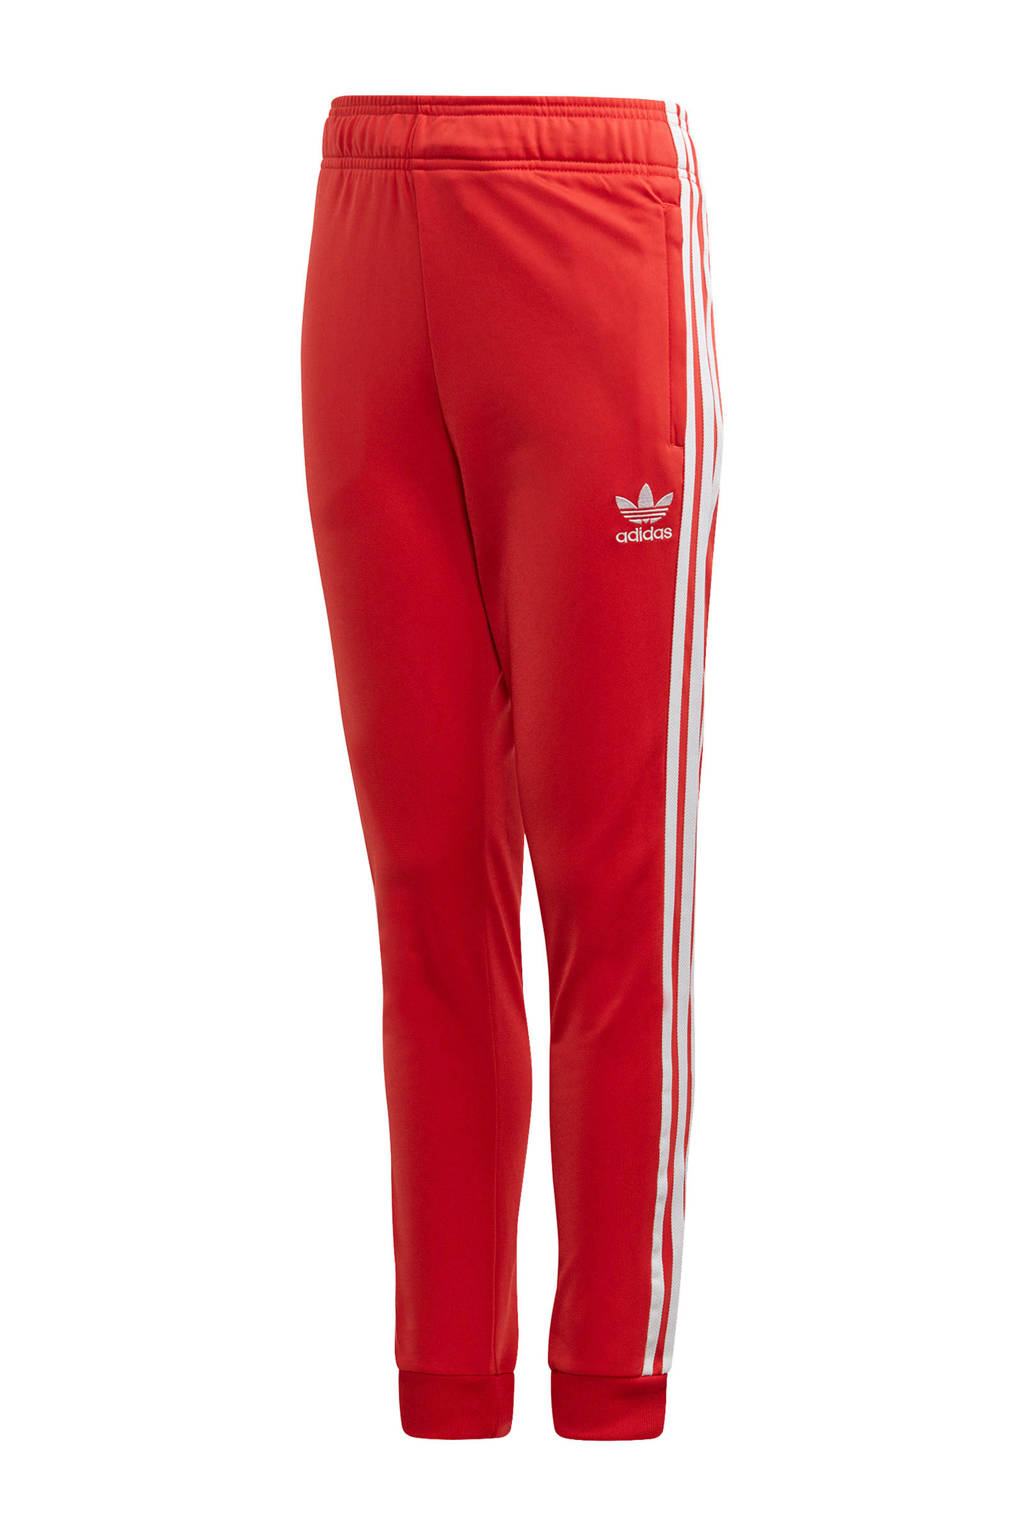 adidas Originals trainingsbroek rood, Rood